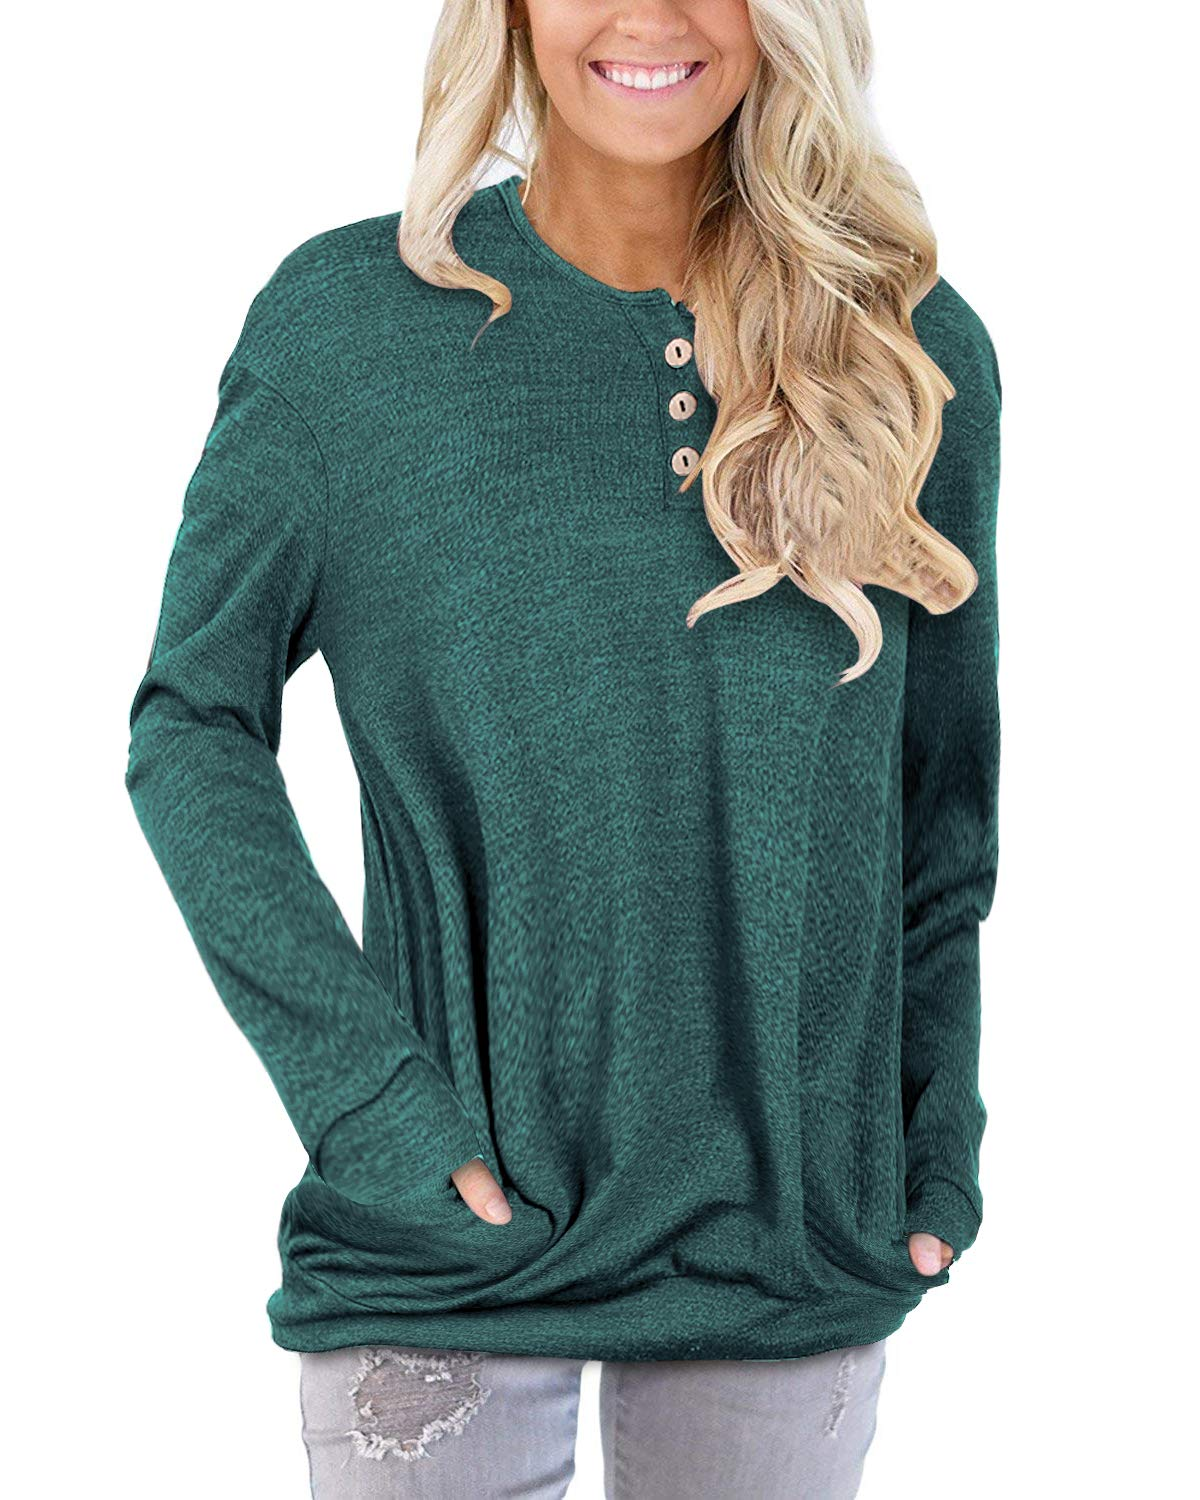 STYLEWORD Women's Long Sleeve Casual Tunic Shirt Tops with Pockets(Green,M)